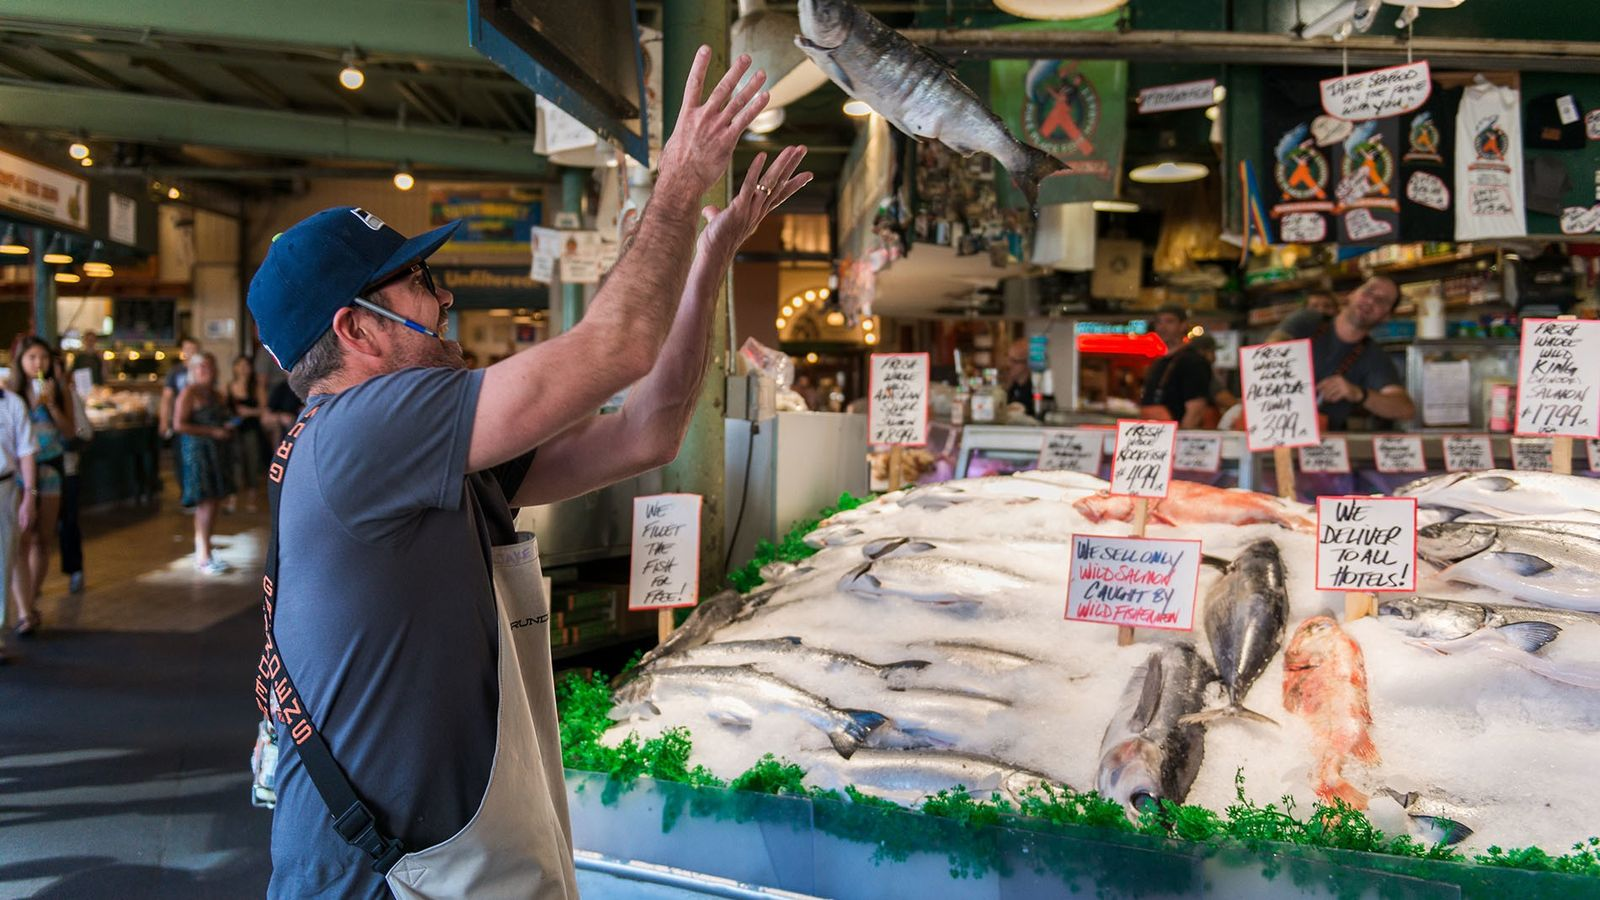 People travel from all over to USA's Washington State to see the famous Pike Place fish throwers ...